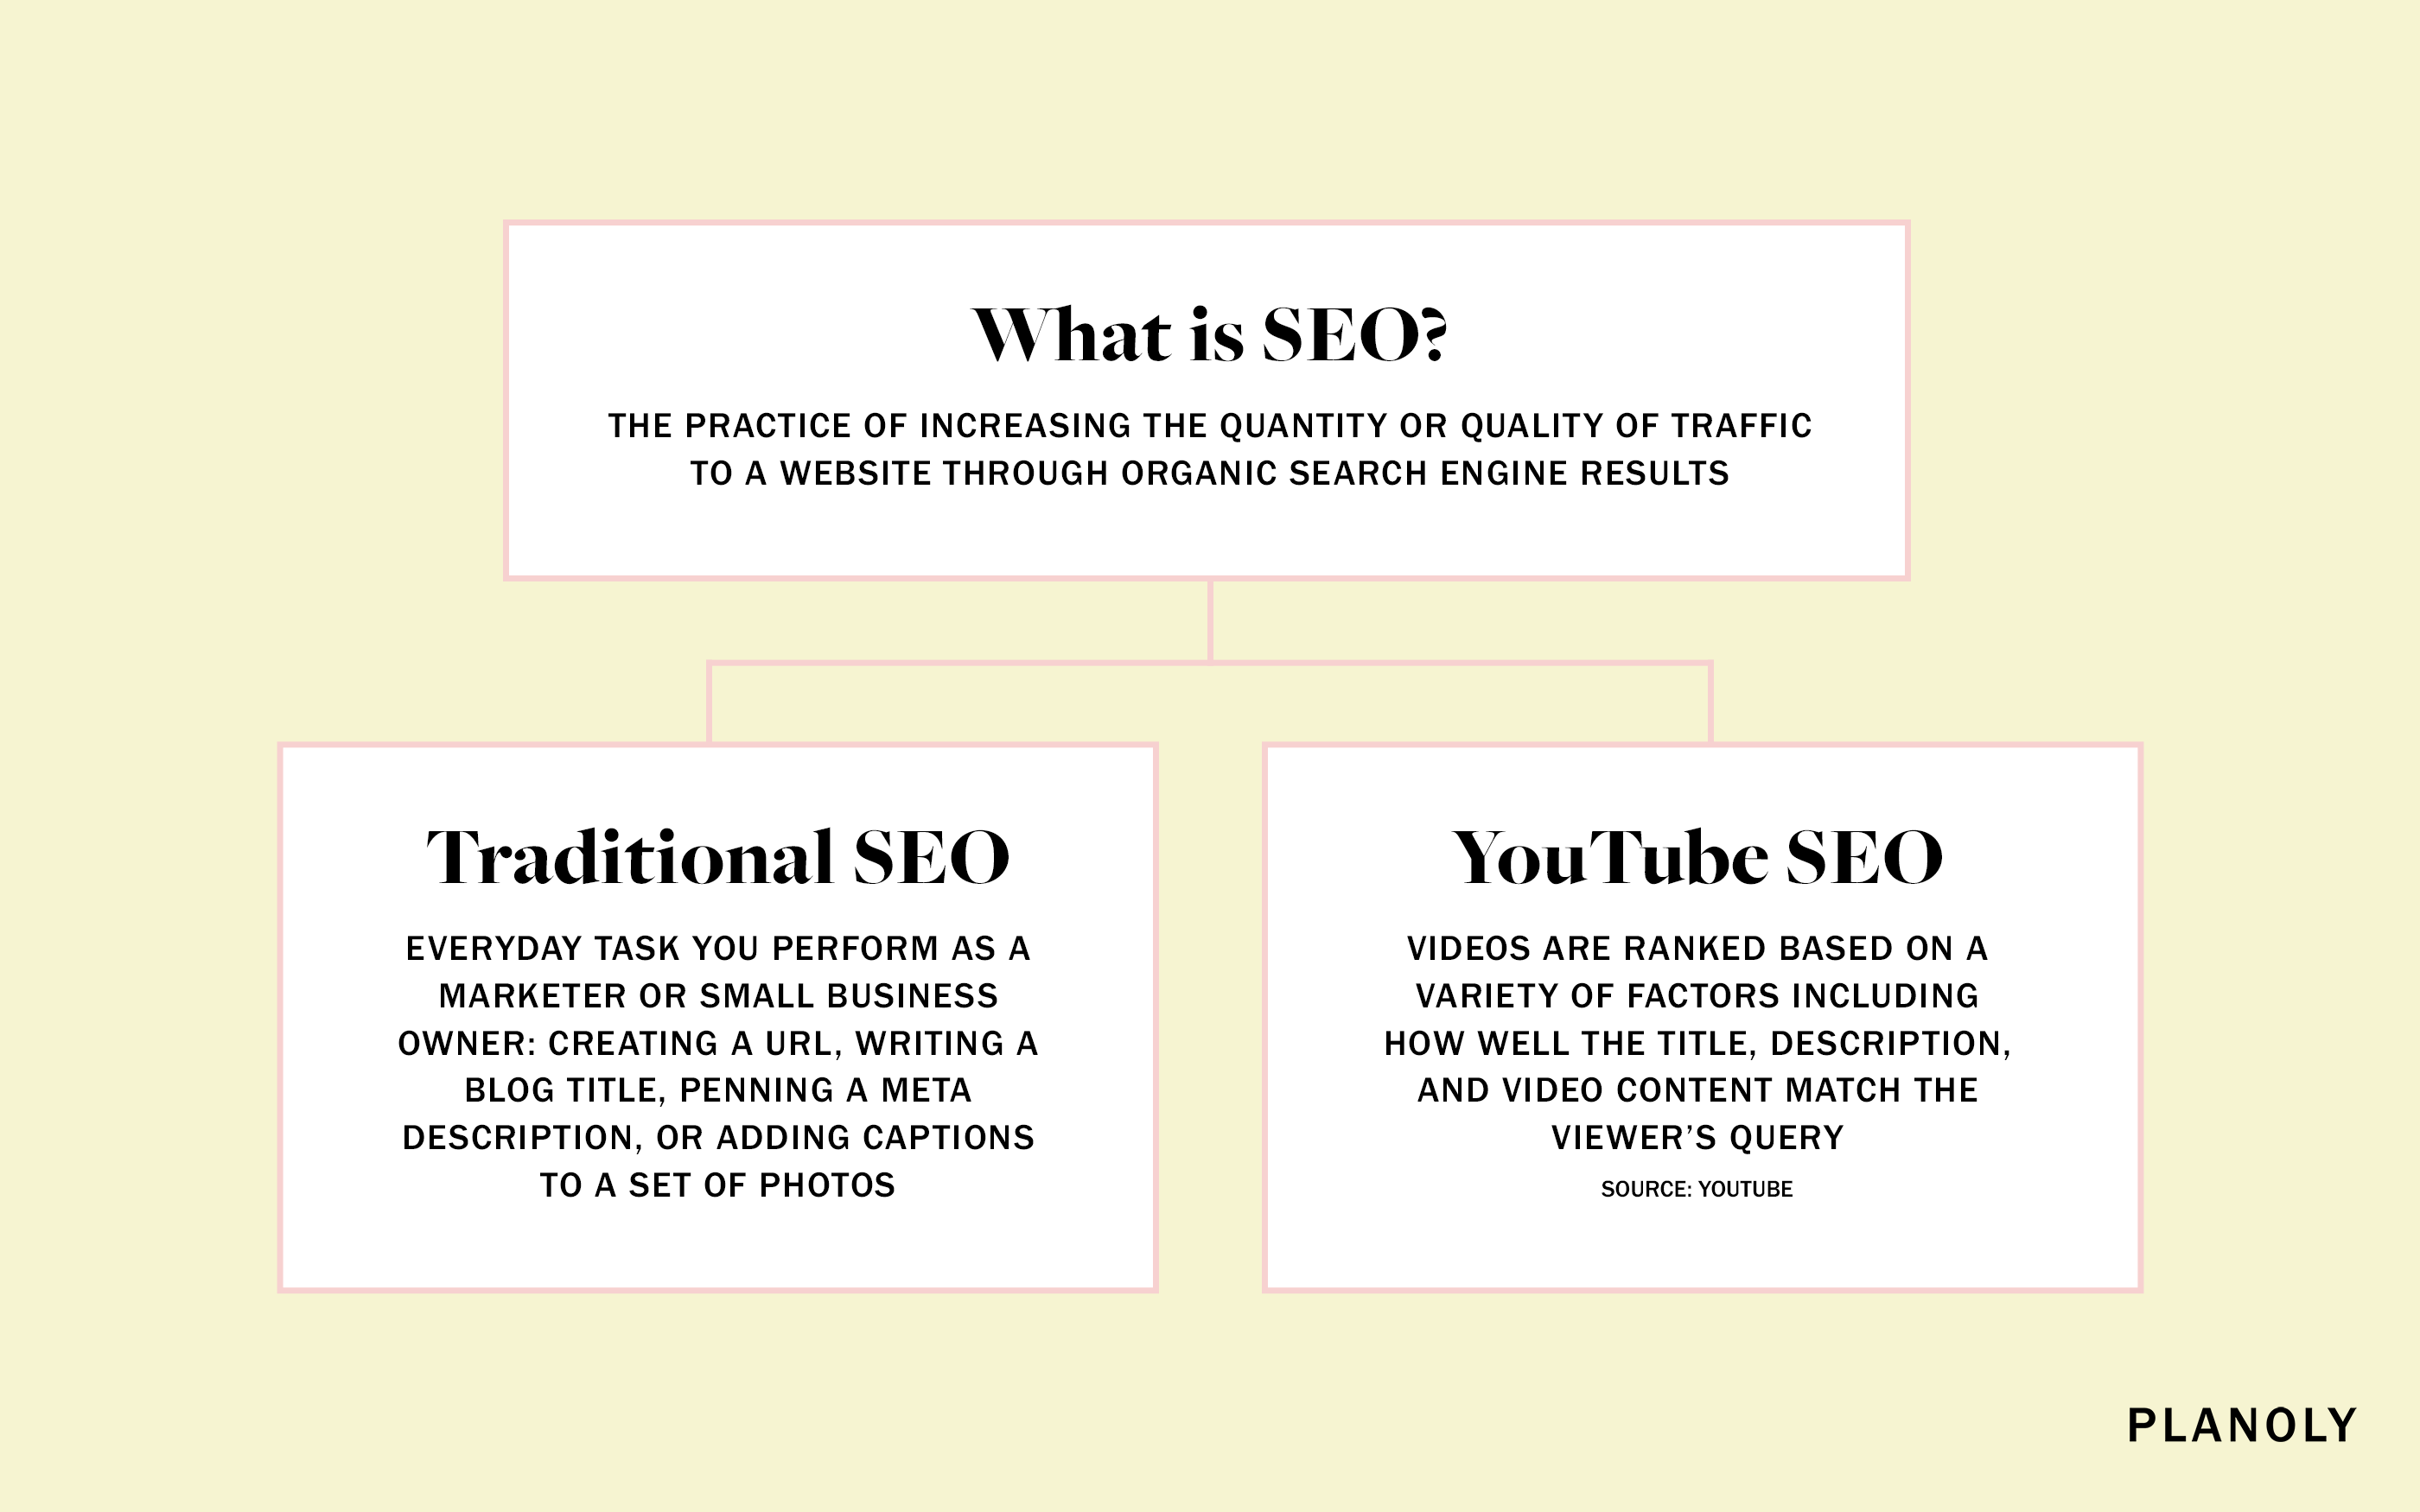 PLANOLY - Blog Post - Youtube SEO - Image 1